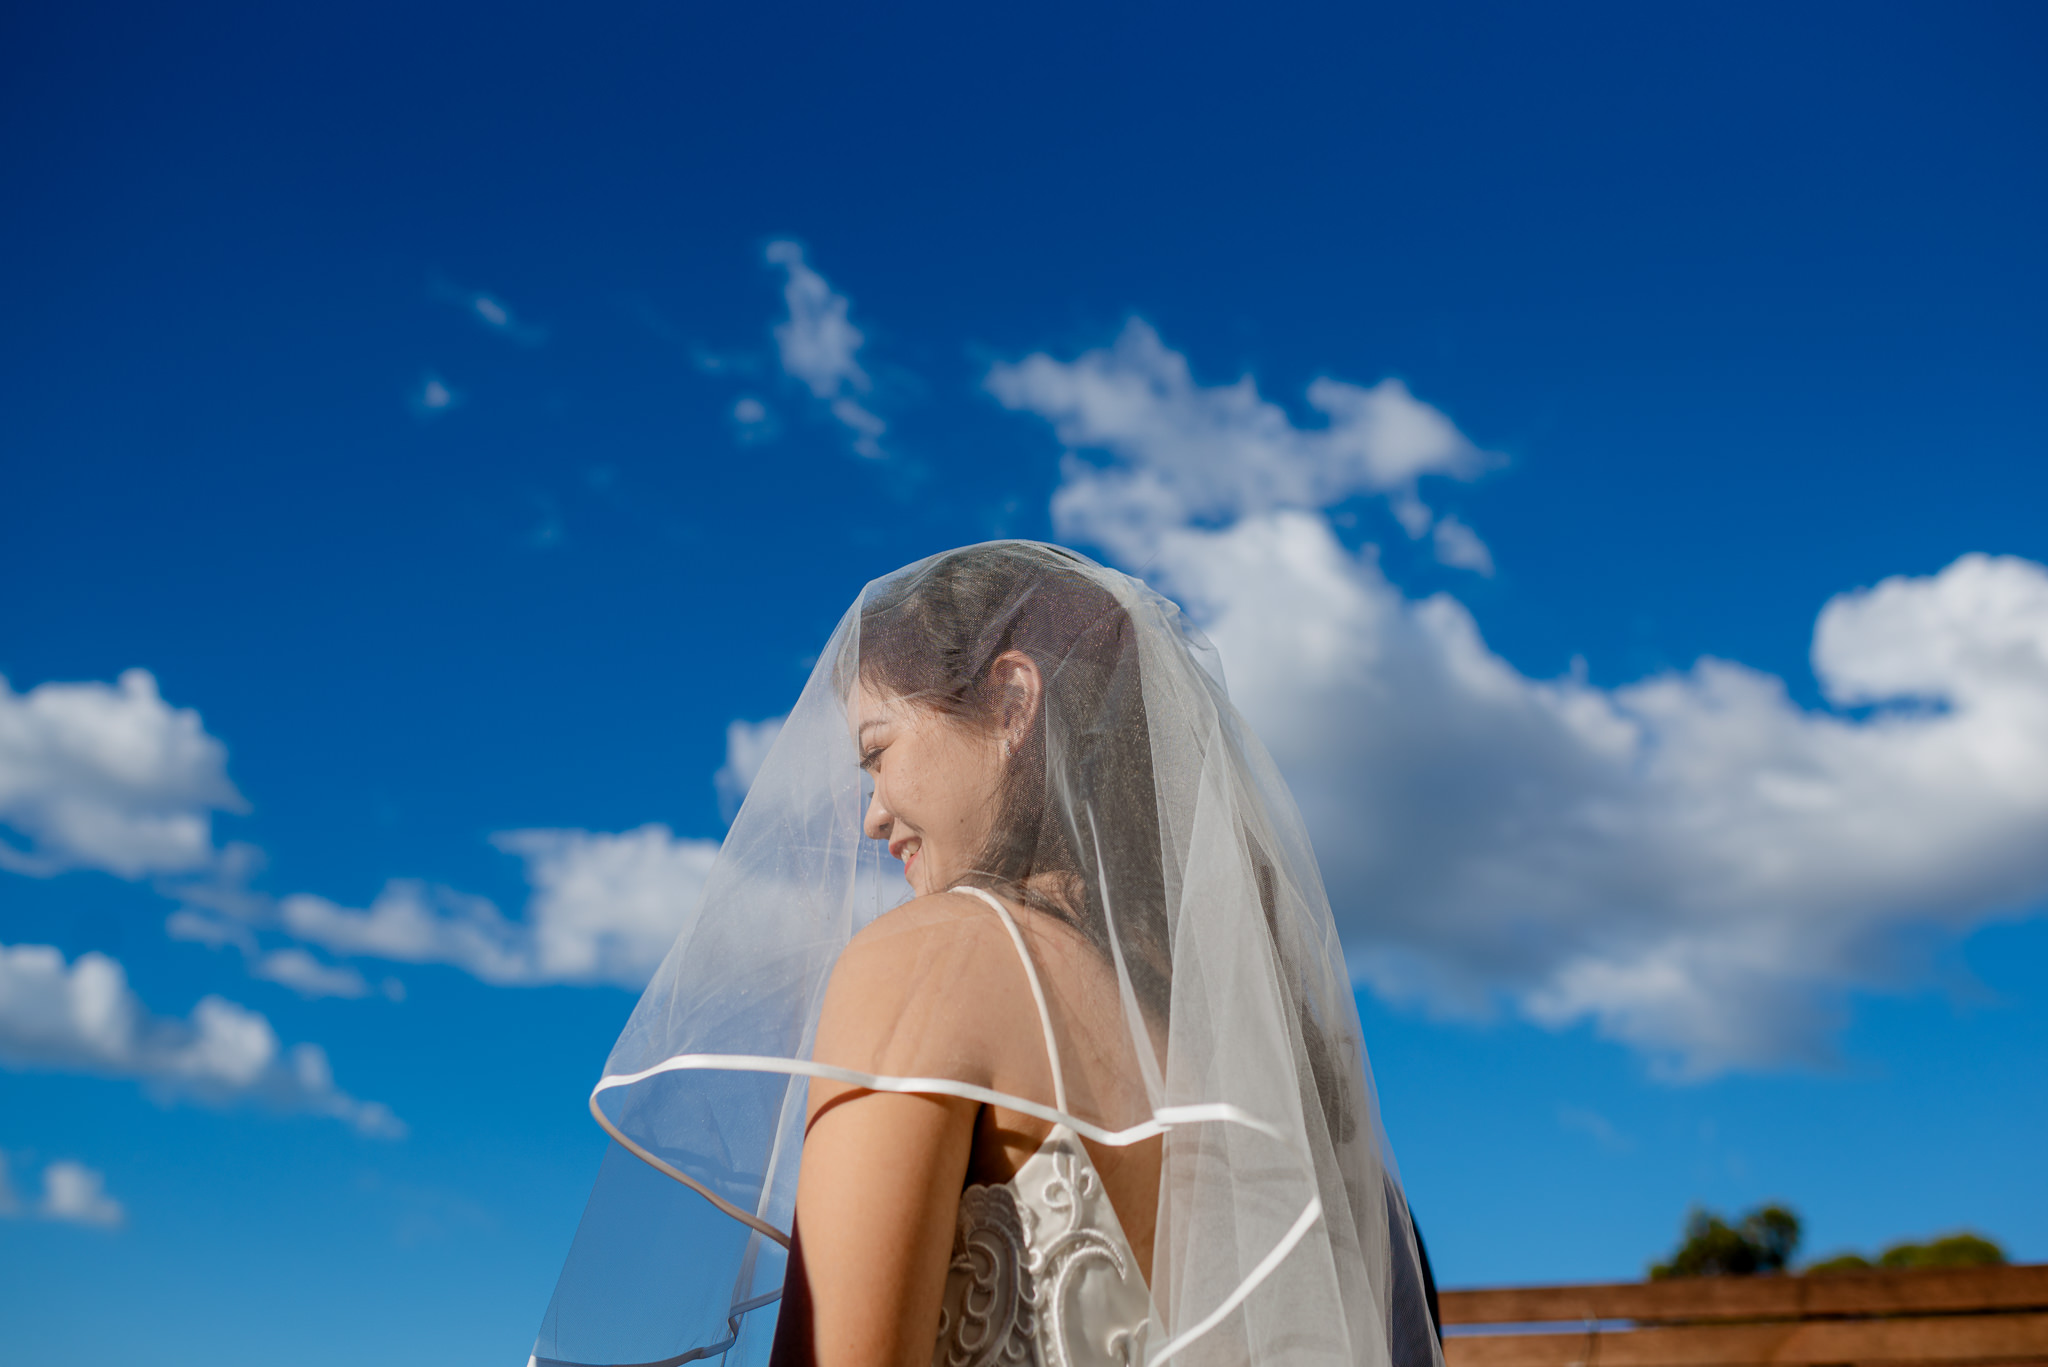 A veiled bride's head set against a backdrop of clouds and a vibrant blue sky